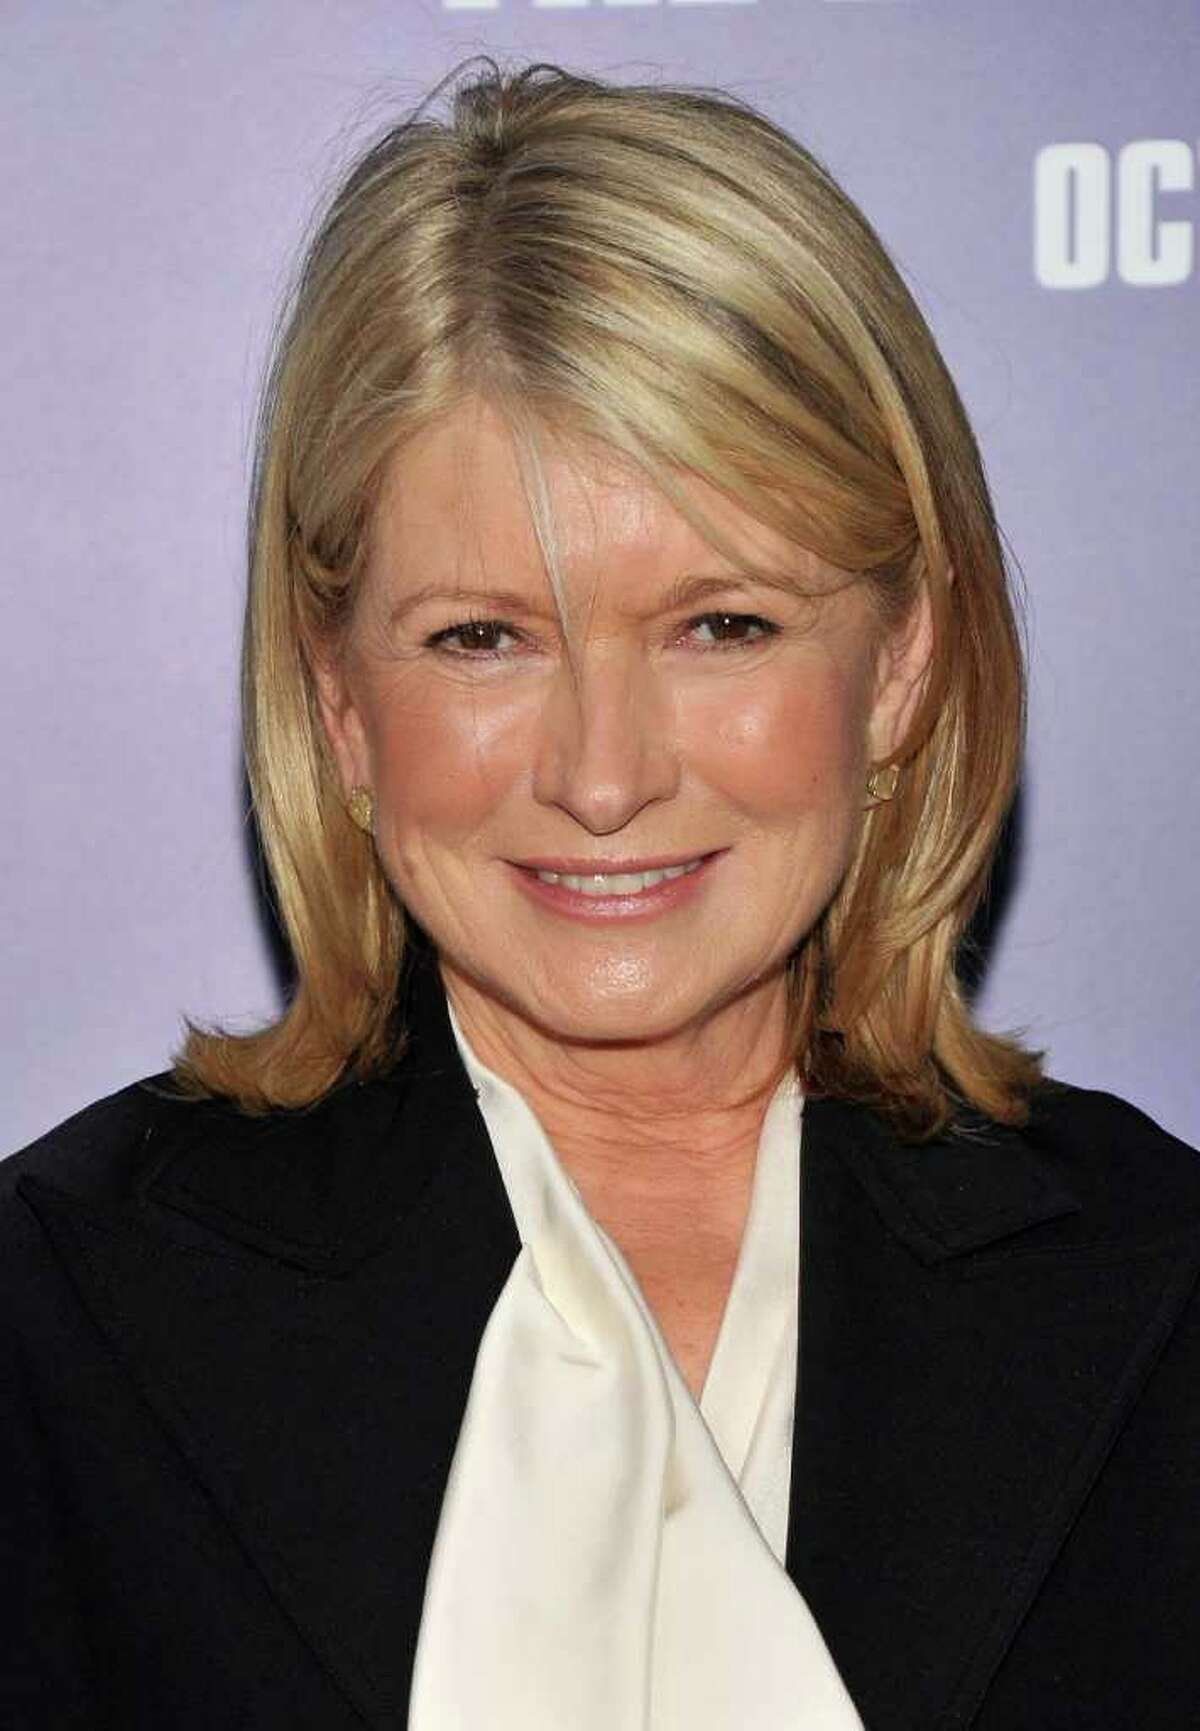 The Orthopaedic Foundation for Active Lifestyles will honor Martha Stewart at the organization's seventh anniversary gala fundraiser at the Harvard Club of New York City Nov. 9. (Photo by Stephen Lovekin/Getty Images)